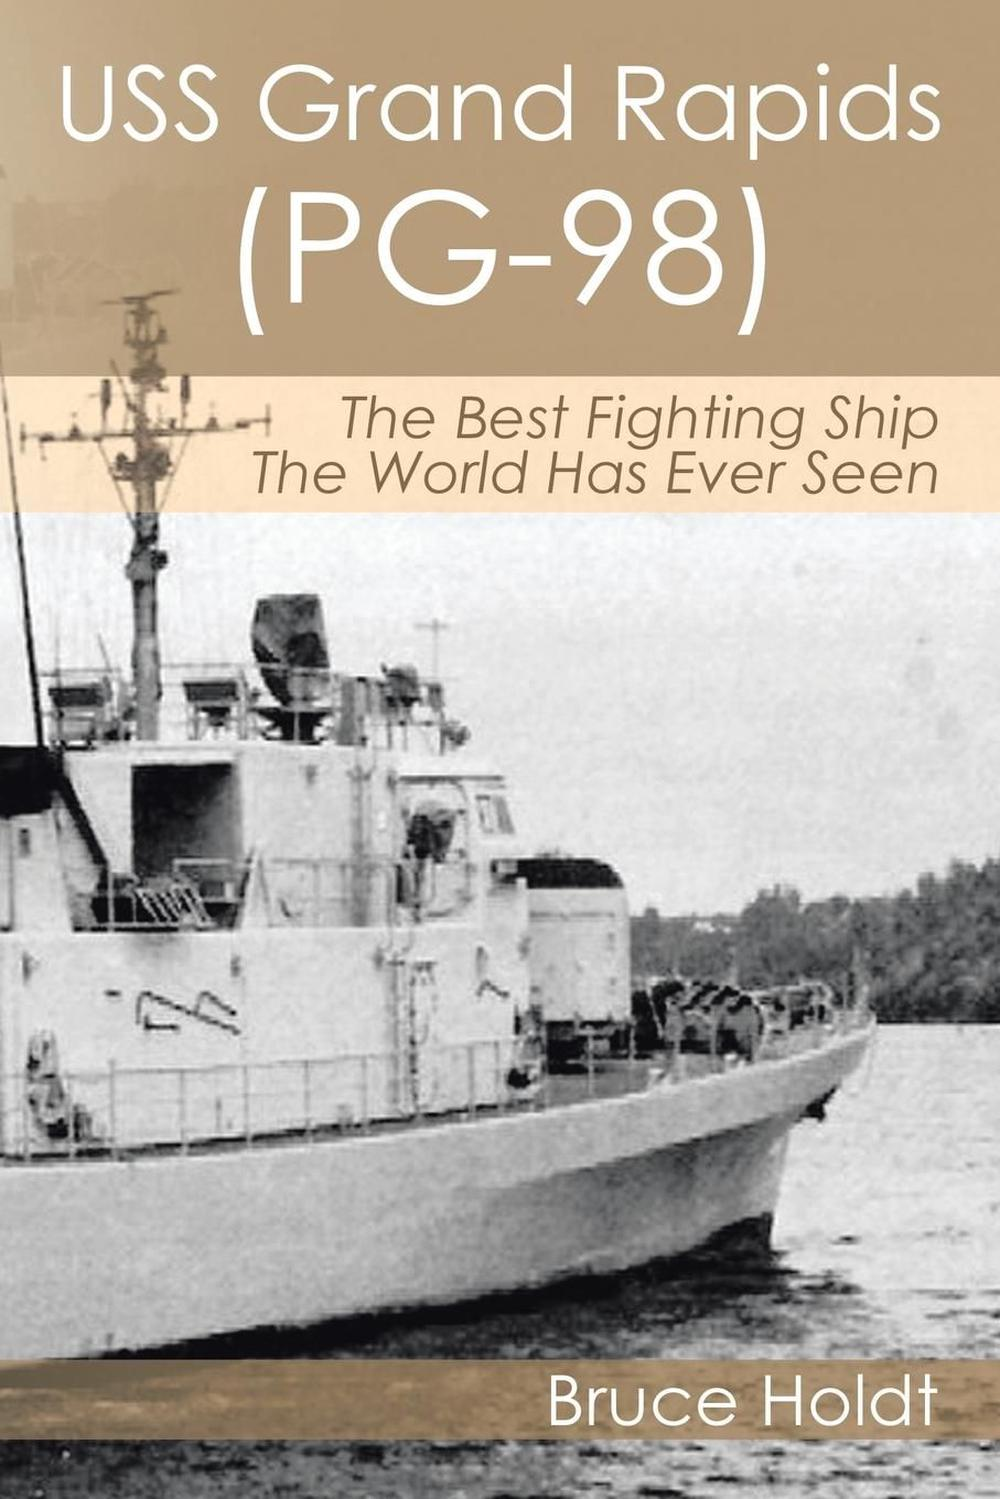 Details about USS Grand Rapids (PG-98): The Best Fighting Ship The World  Has Ever Seen by Bruc